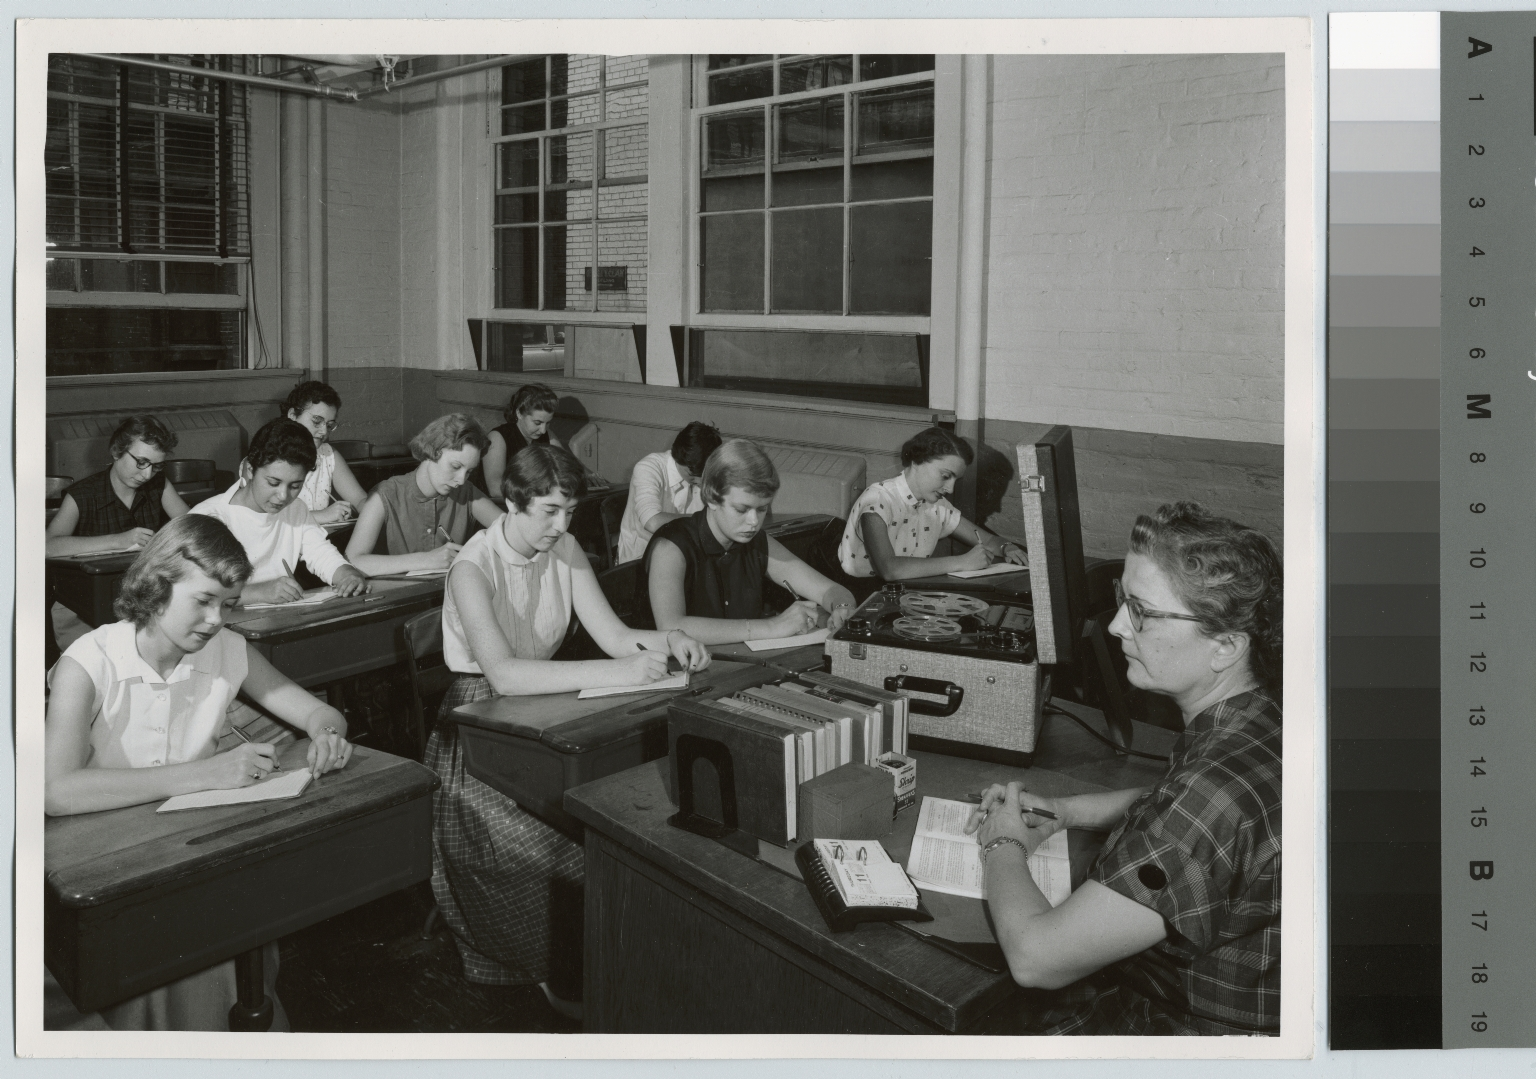 Academics, business, short-hand class. August 11, 1955